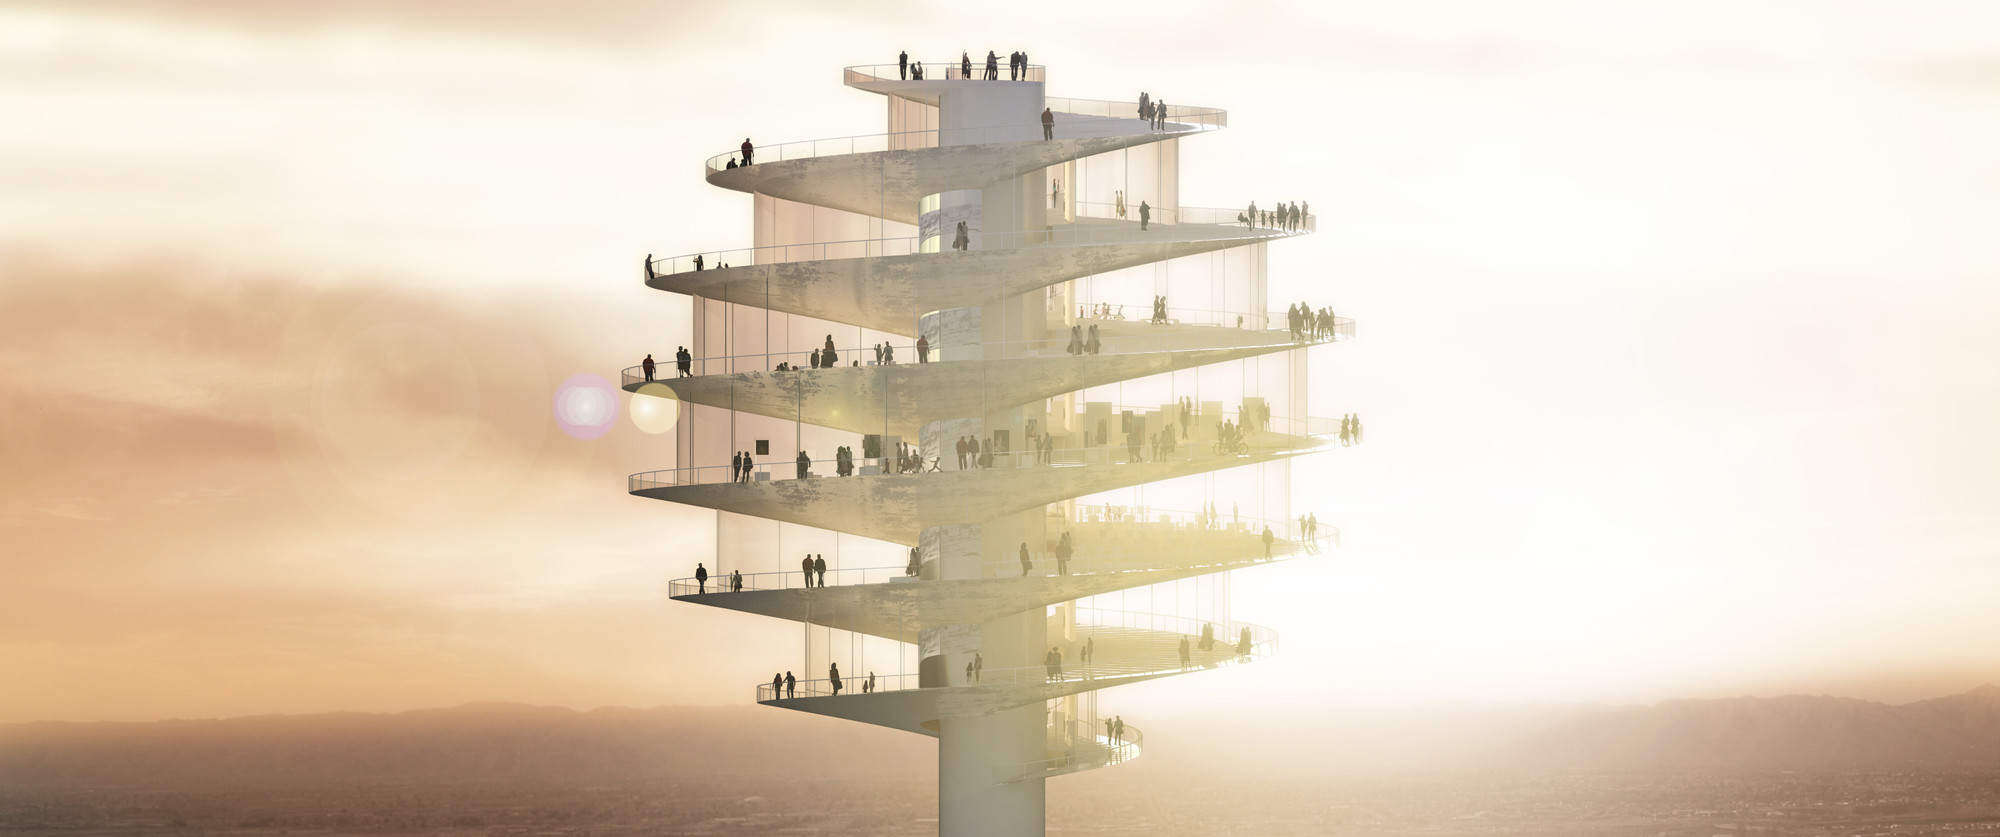 Phoenix Observation Tower / BIG, Courtesy of BIG Architects